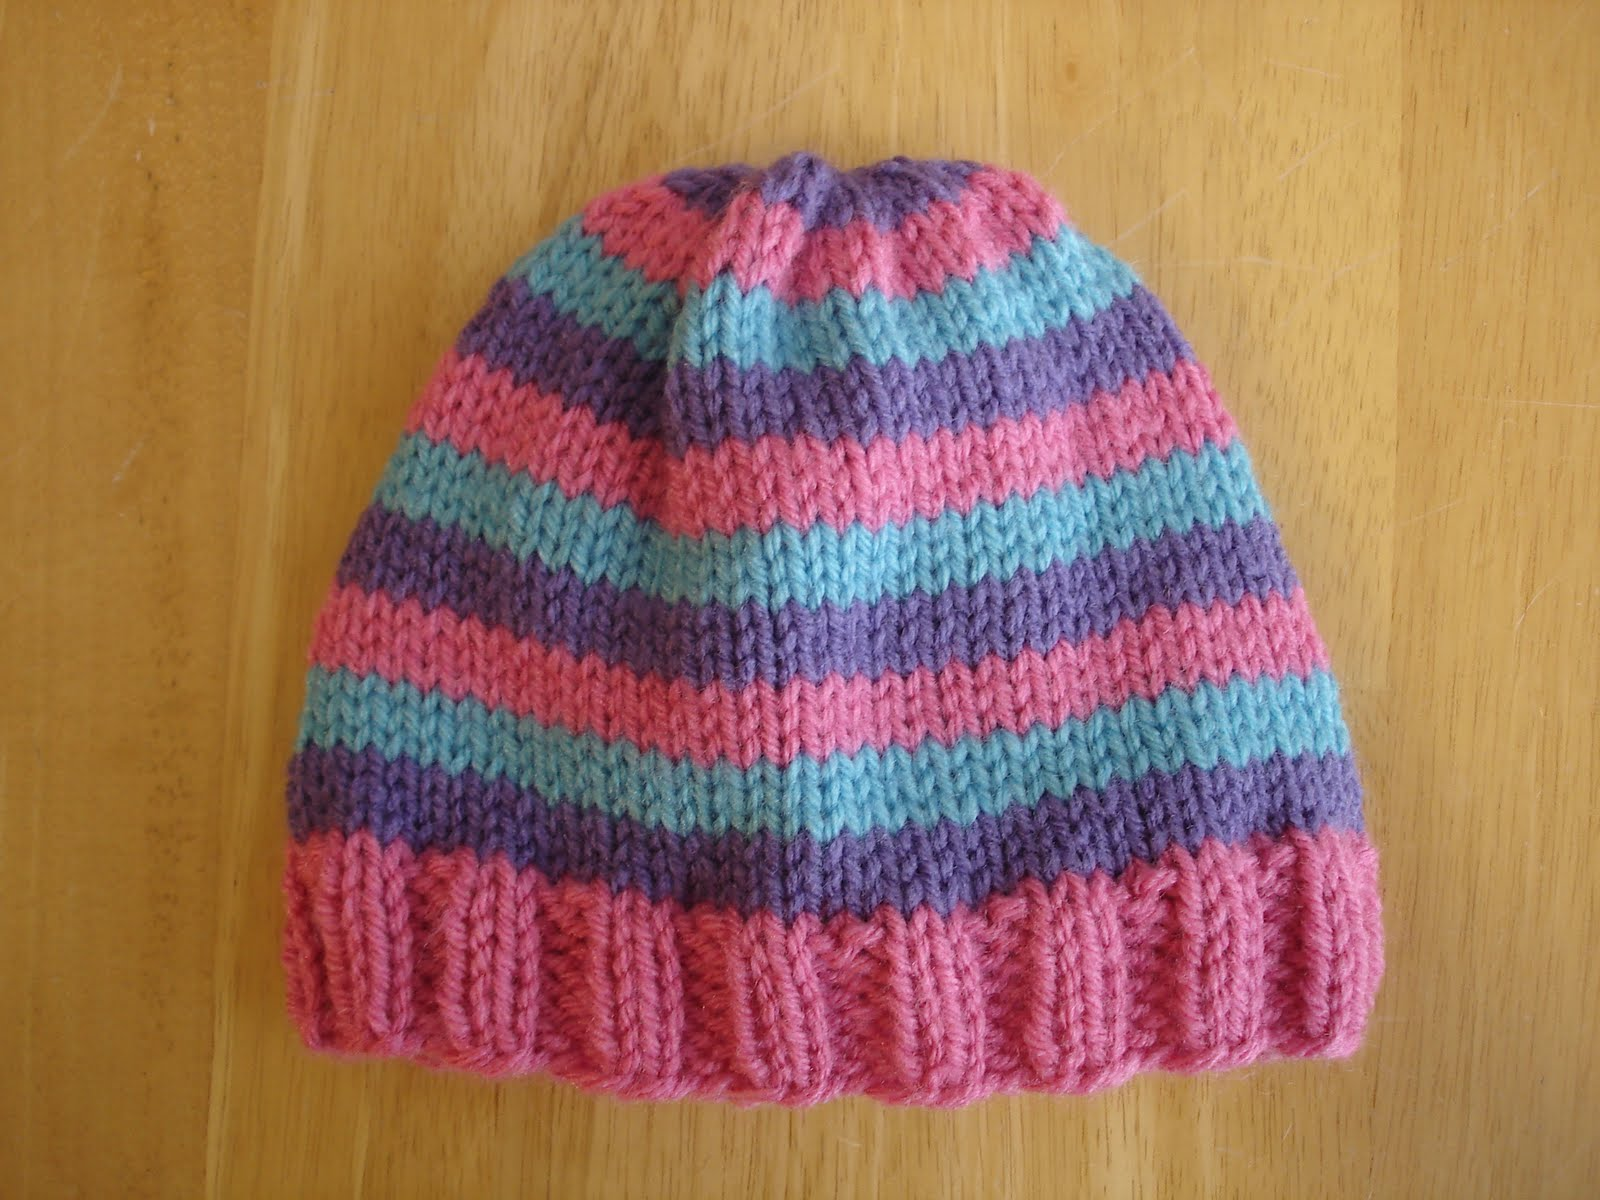 Free Knitted Beanie Patterns For Kids : Fiber Flux: Free Knitting Pattern...Super Pink Toddler Hat!